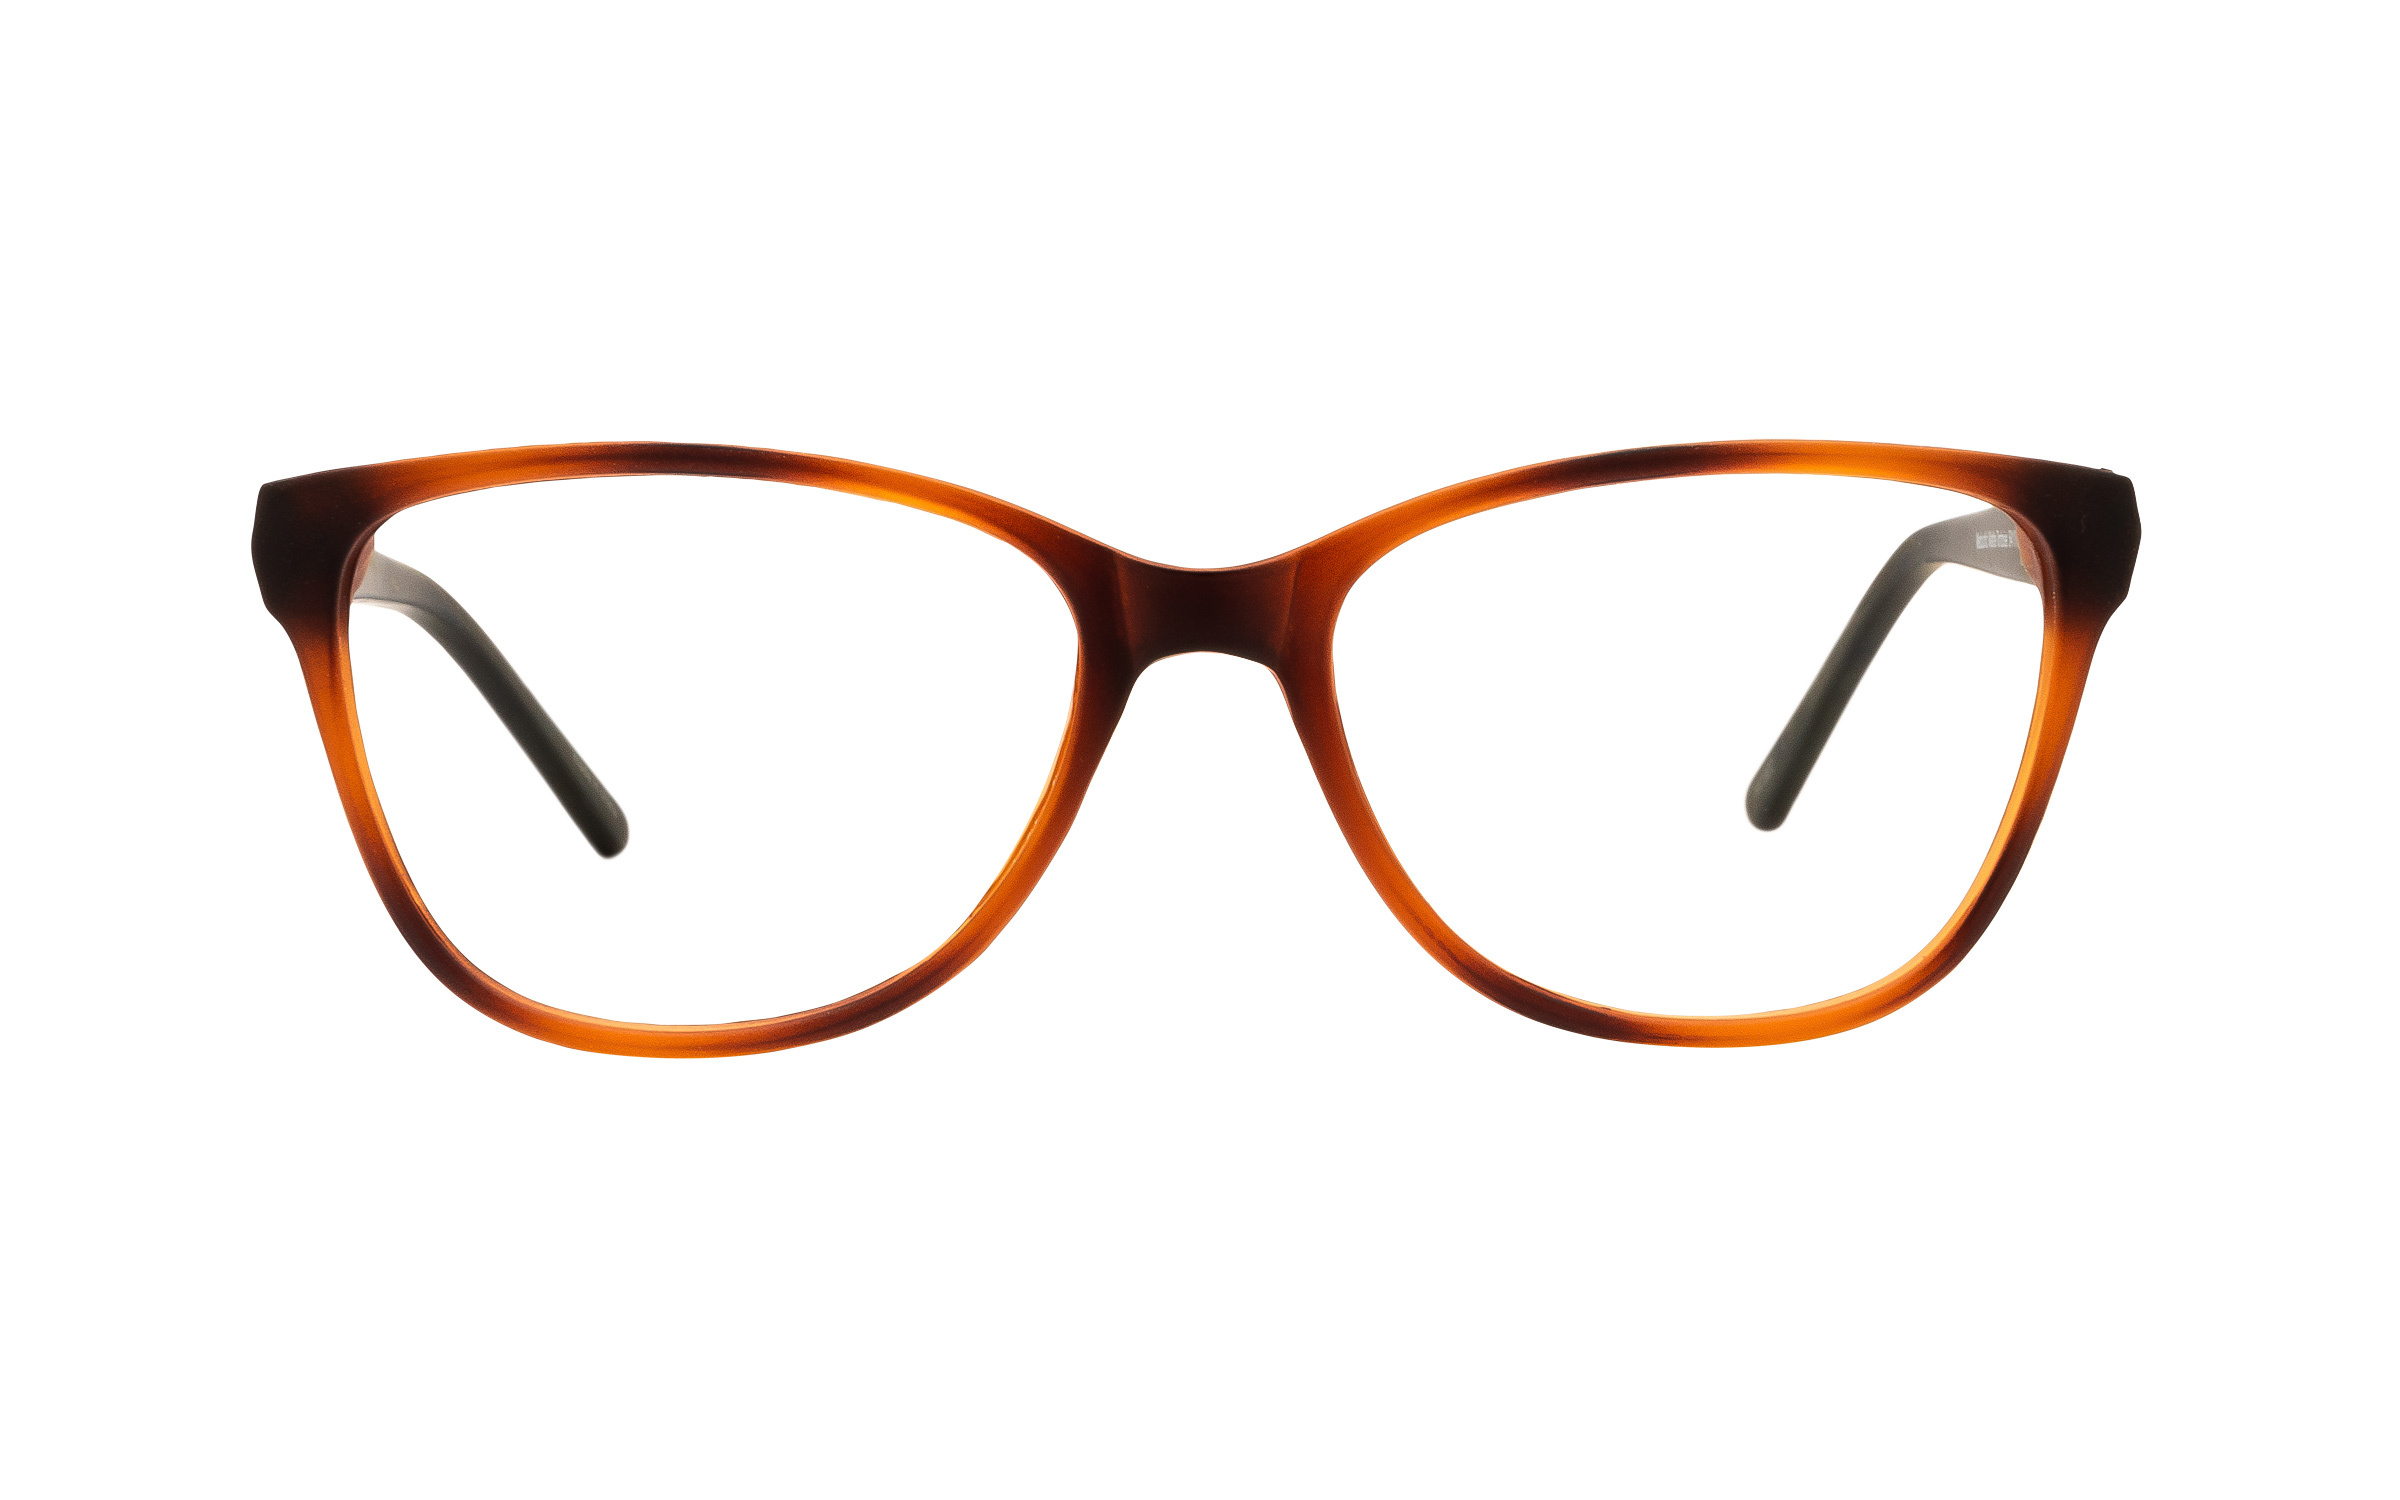 Clearly Basics Meductic CLS030 C04 (54) Eyeglasses and Frame in Matte Tortoise Tortoise/Brown